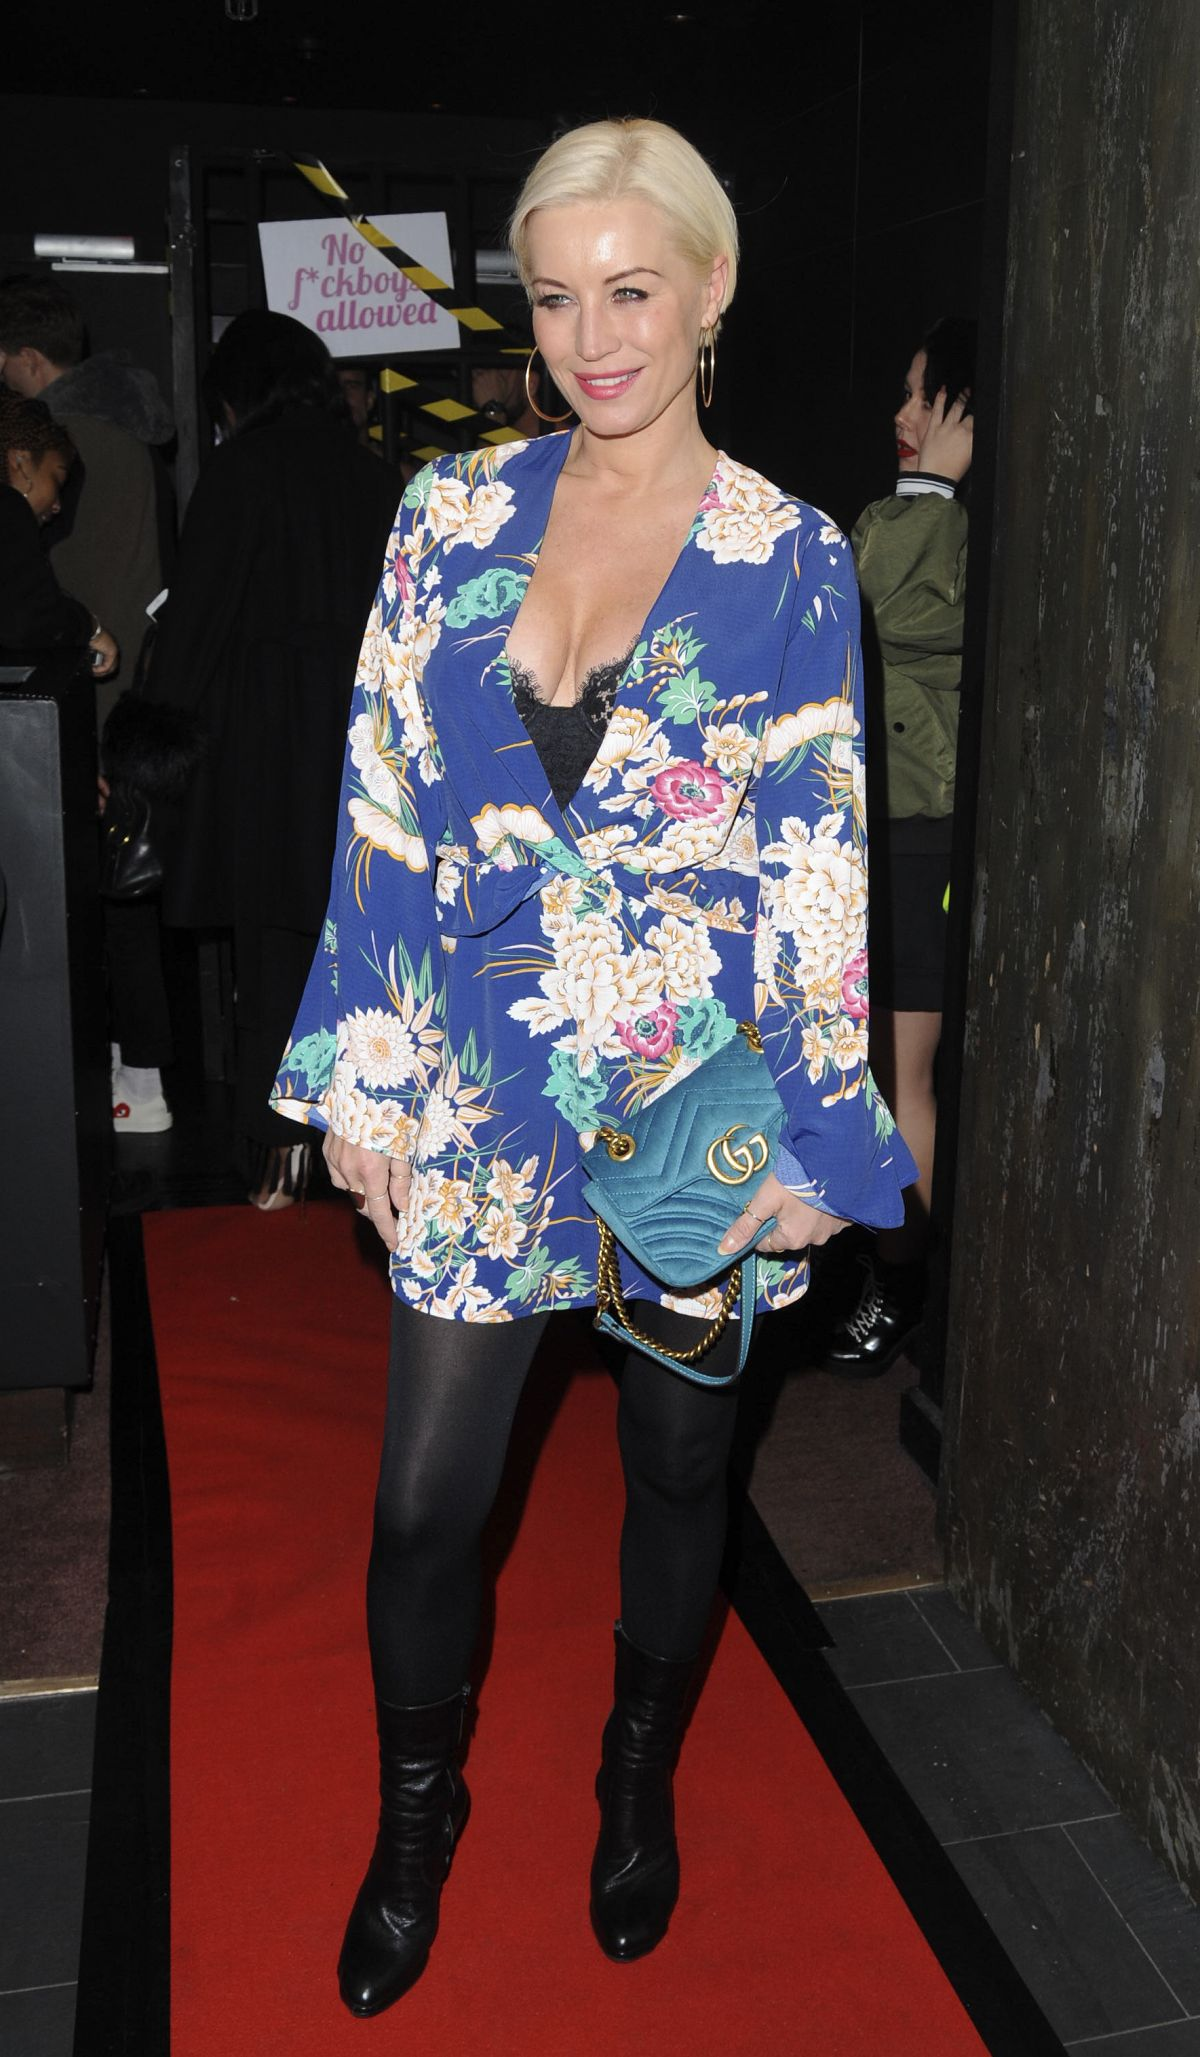 DENISE VAN OUTEN At Valentines Party At Libertine